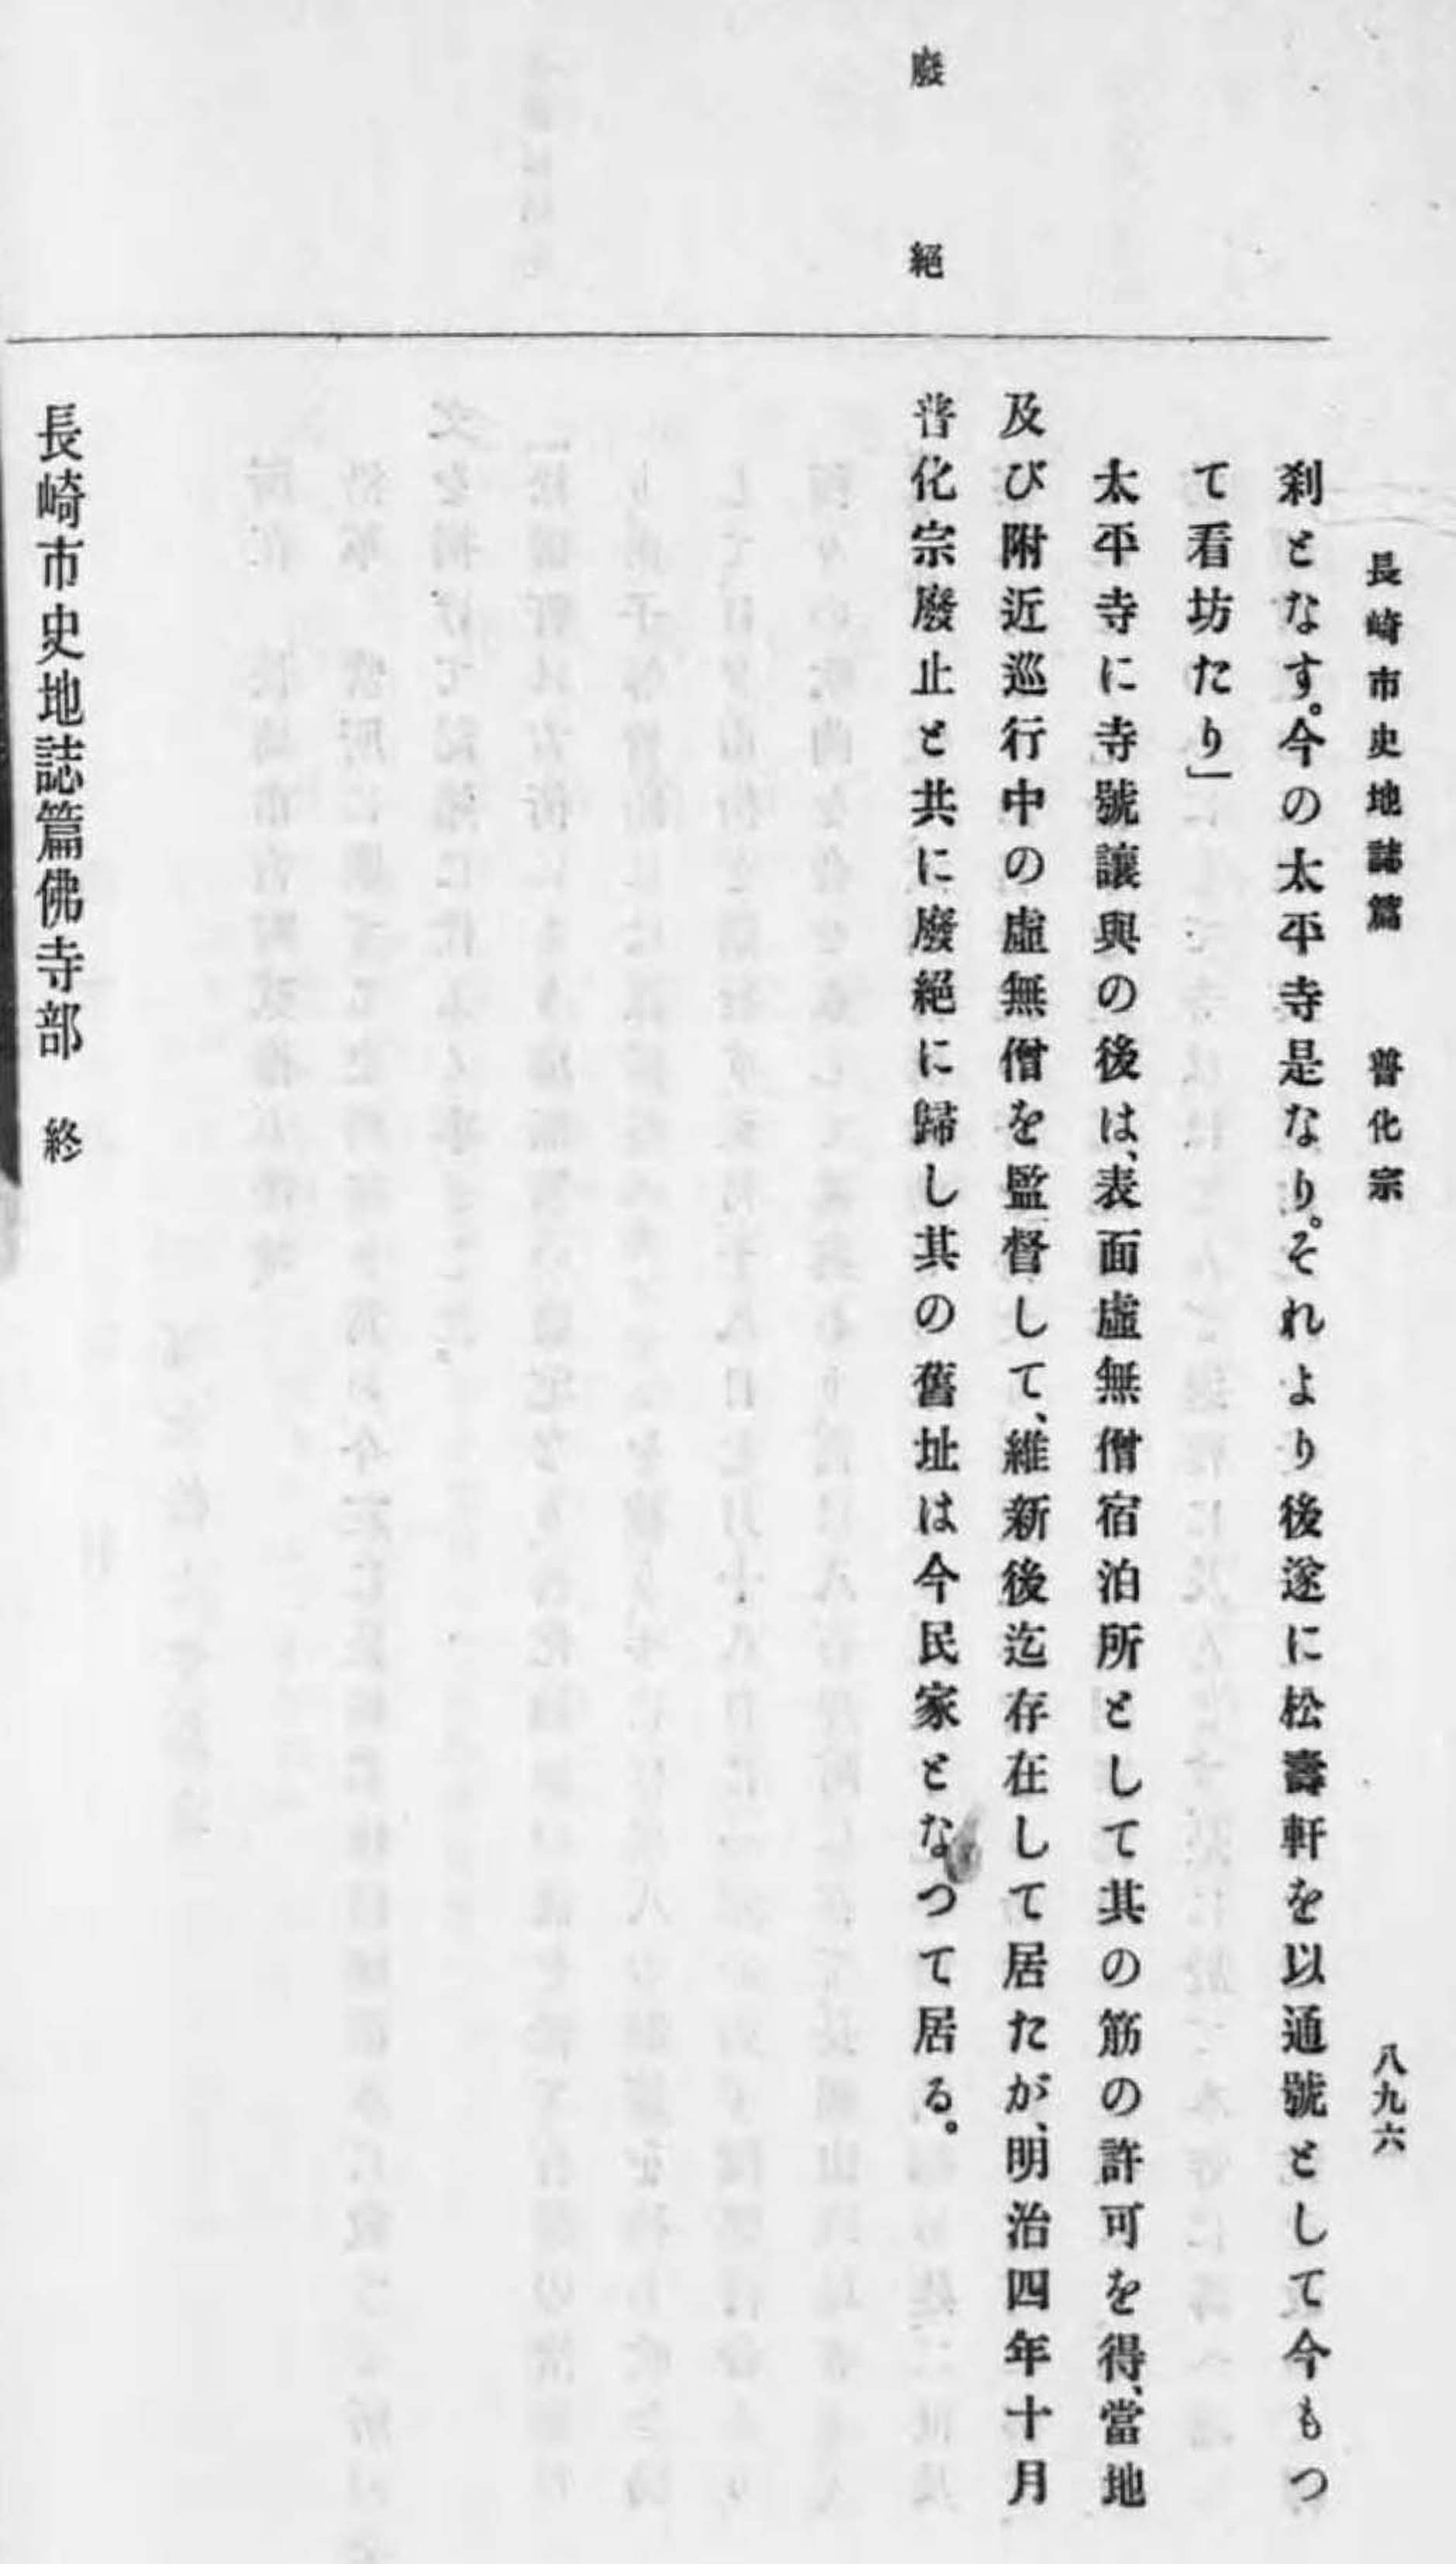 History of Nagasaki City: Buddhist Temples Vol. 2, p. 896